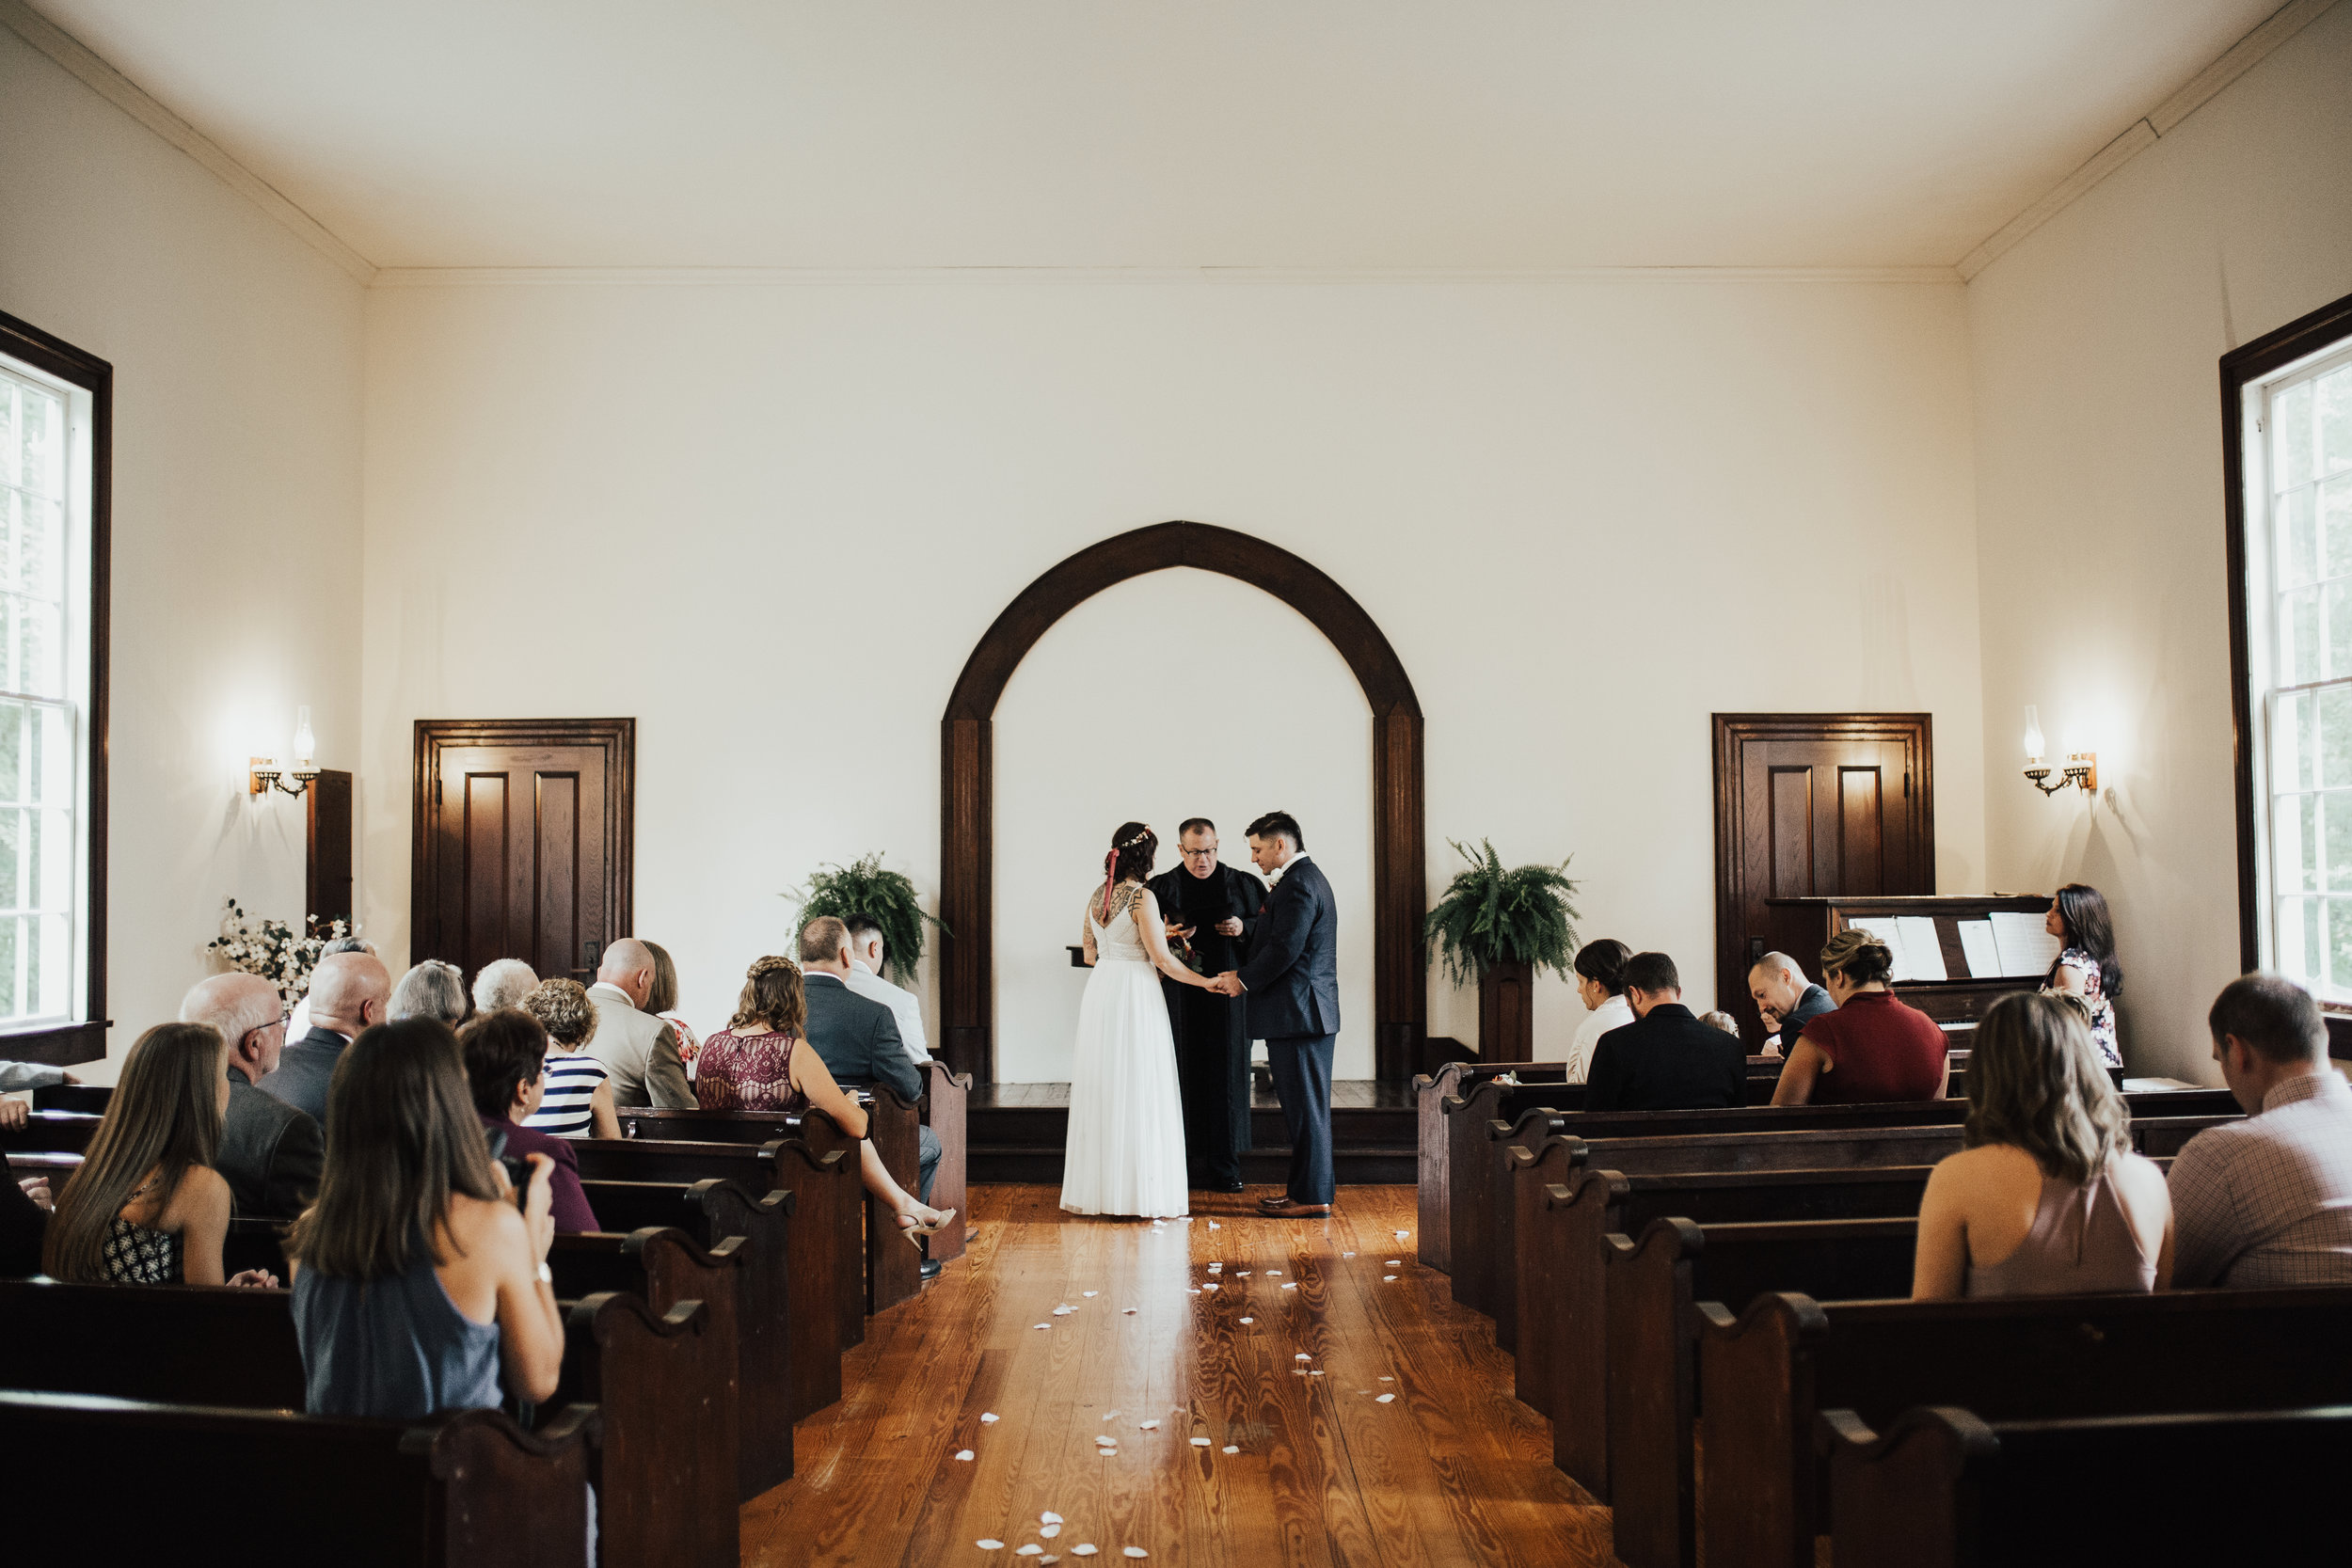 They chose to have an intimate ceremony with only their closest family sharing the moment with them.